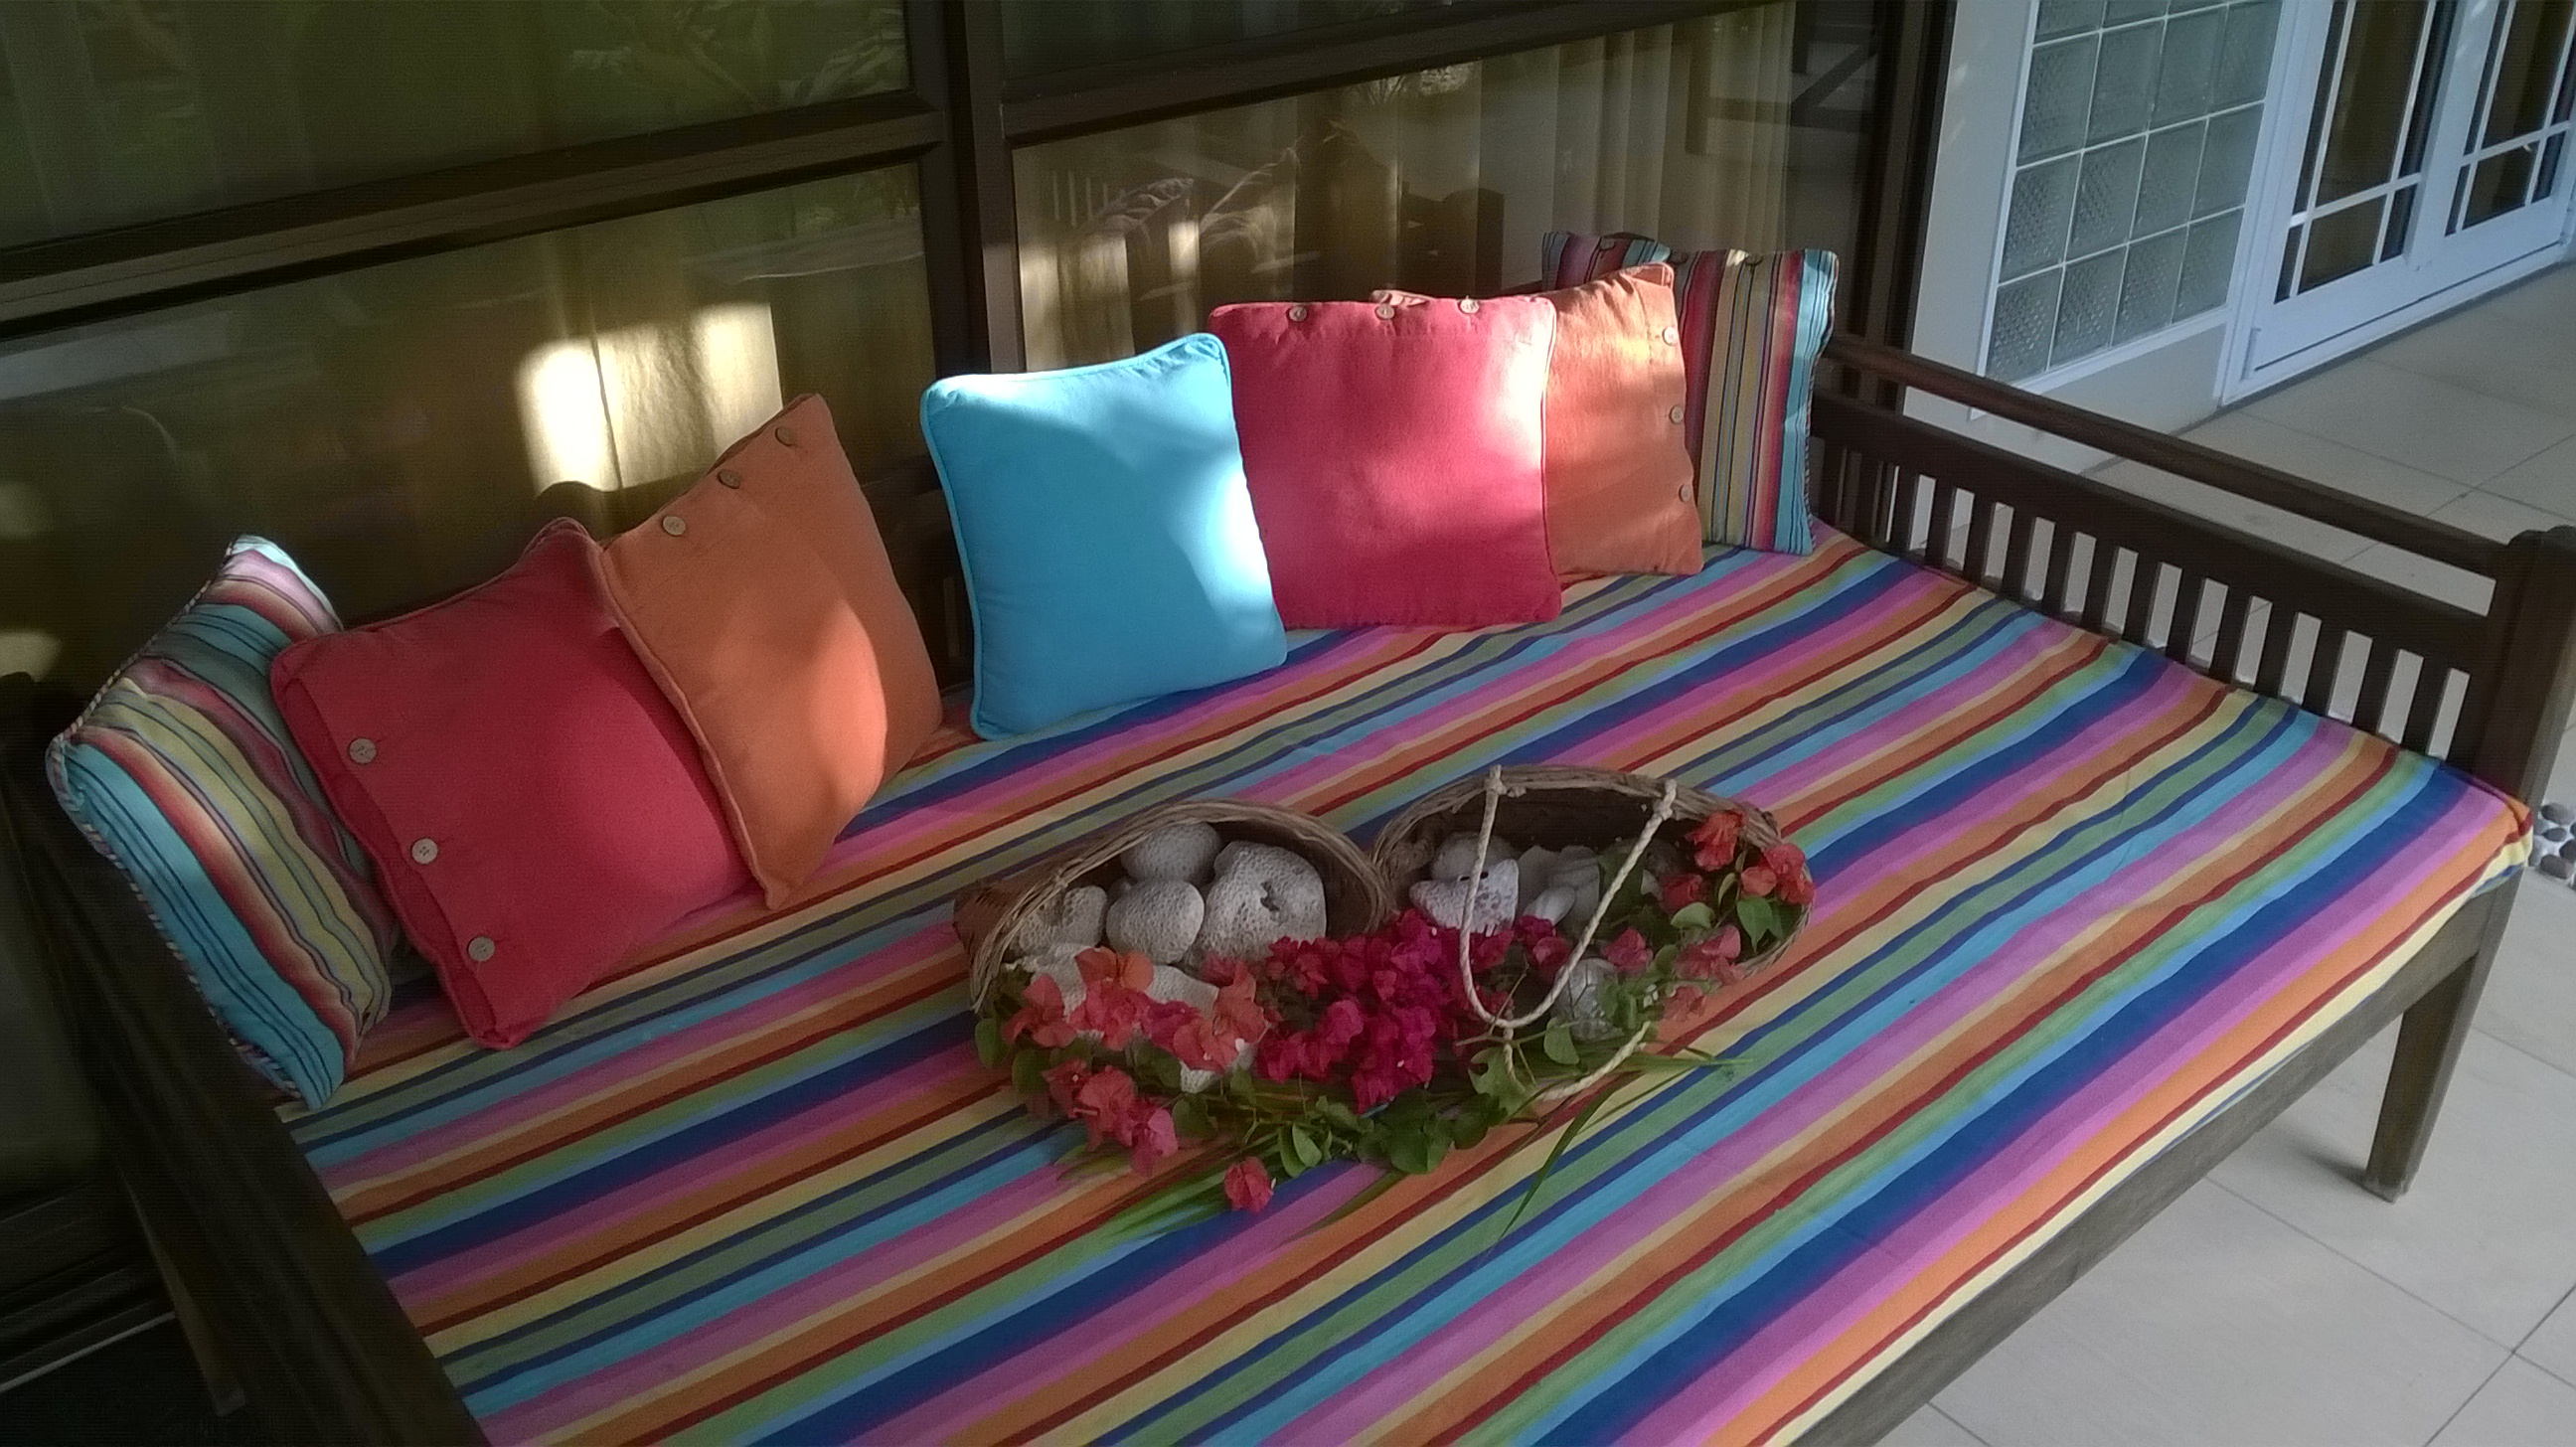 Daybed on the verandah